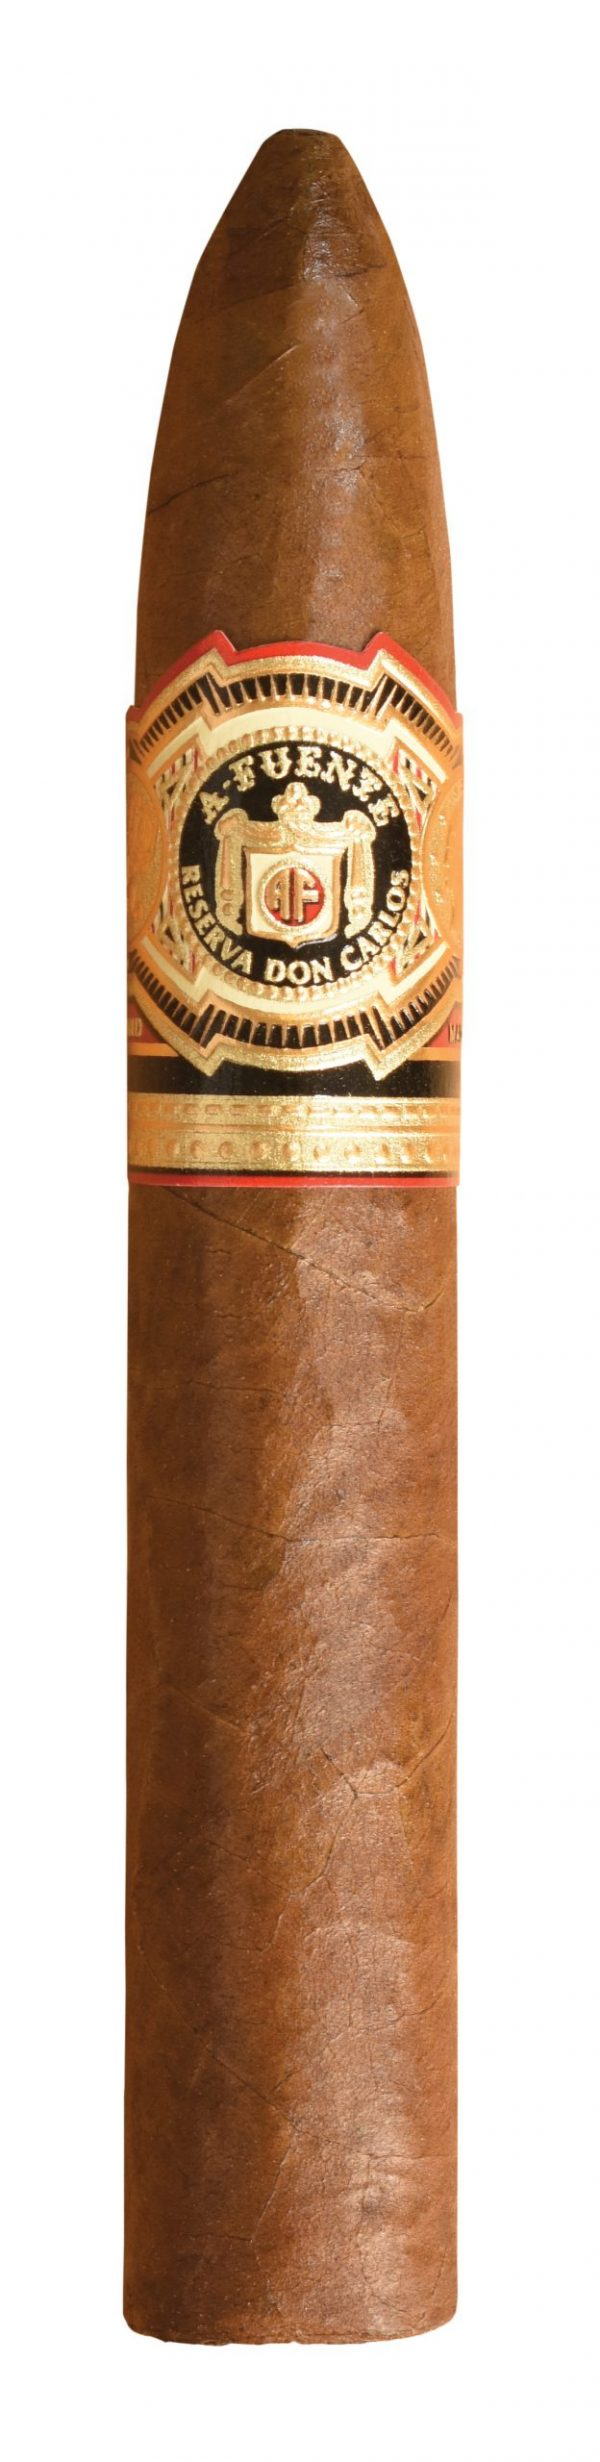 arturo fuente don carlos belicoso single cigar